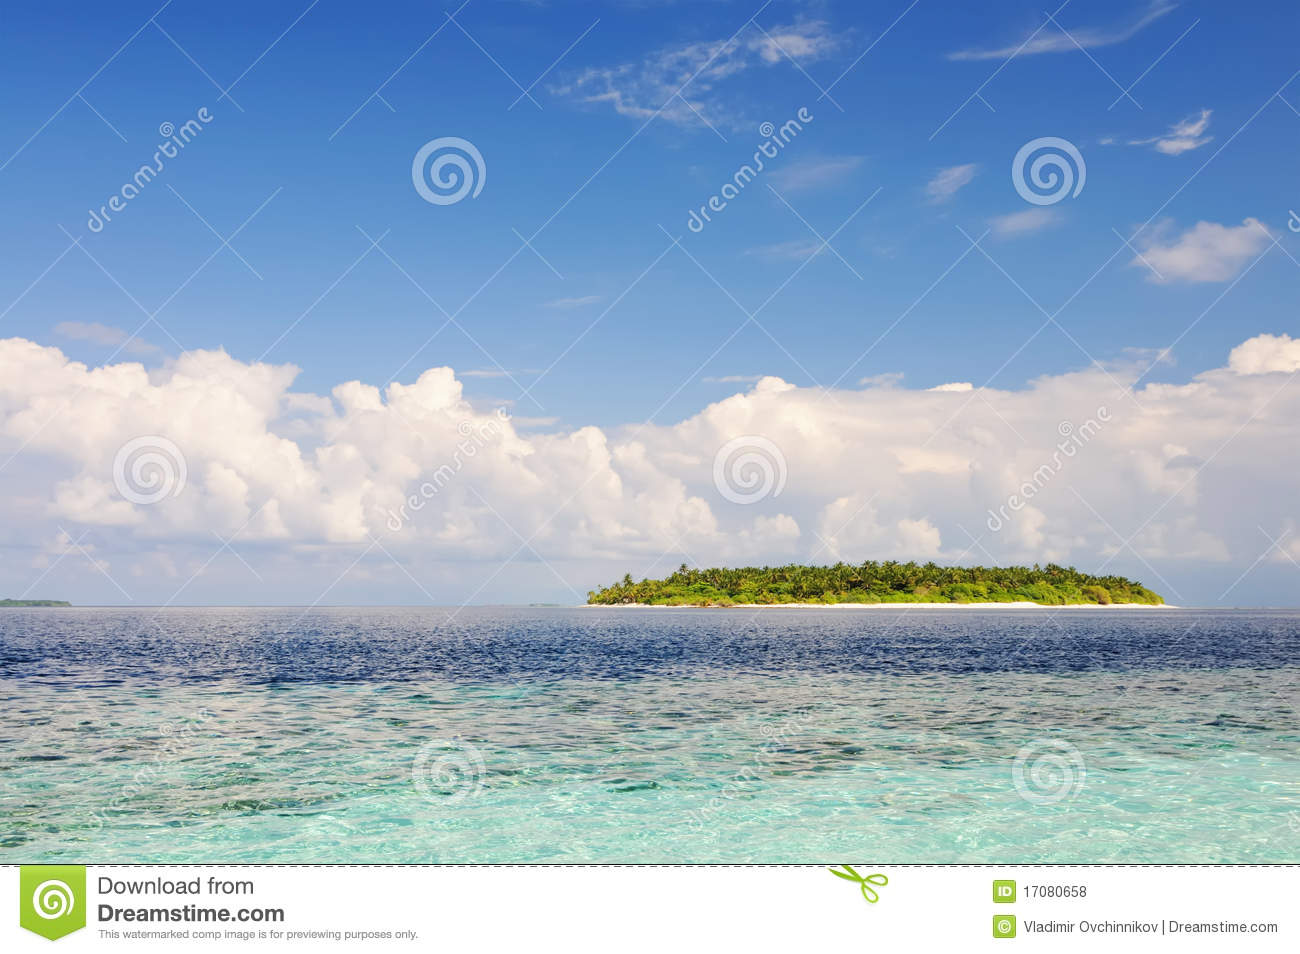 Remote Island Royalty Free Stock Photos.